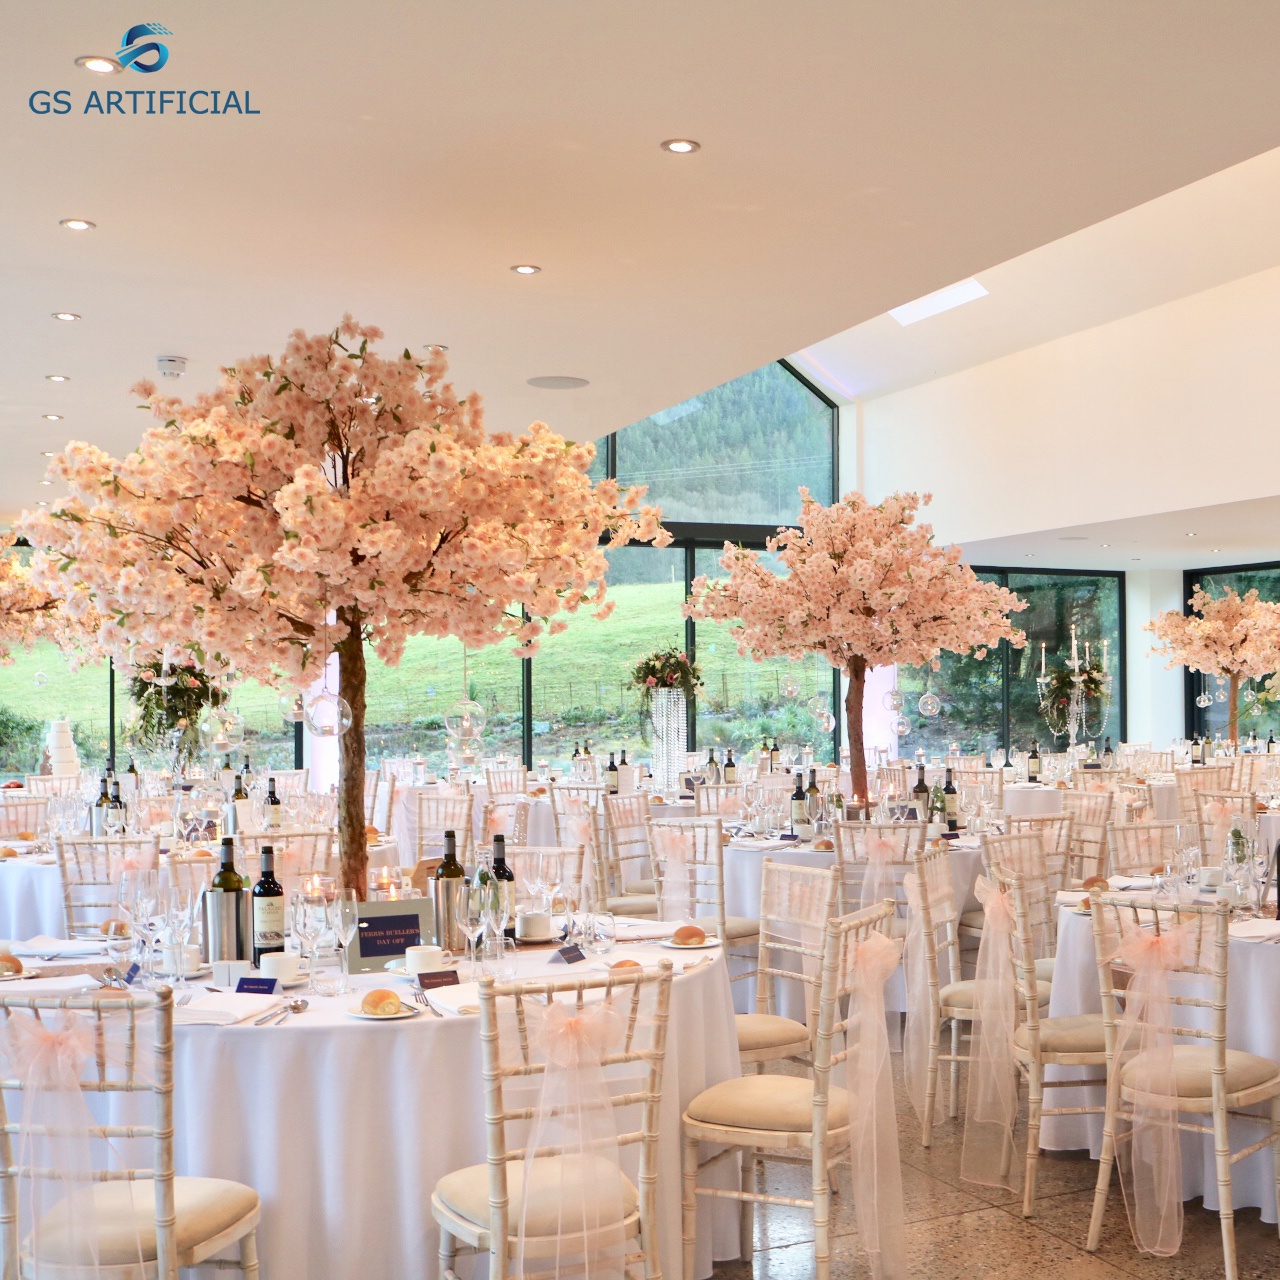 trees for indoor wedding decoration plastic Cherry Blossom tree centerpieces for wedding table